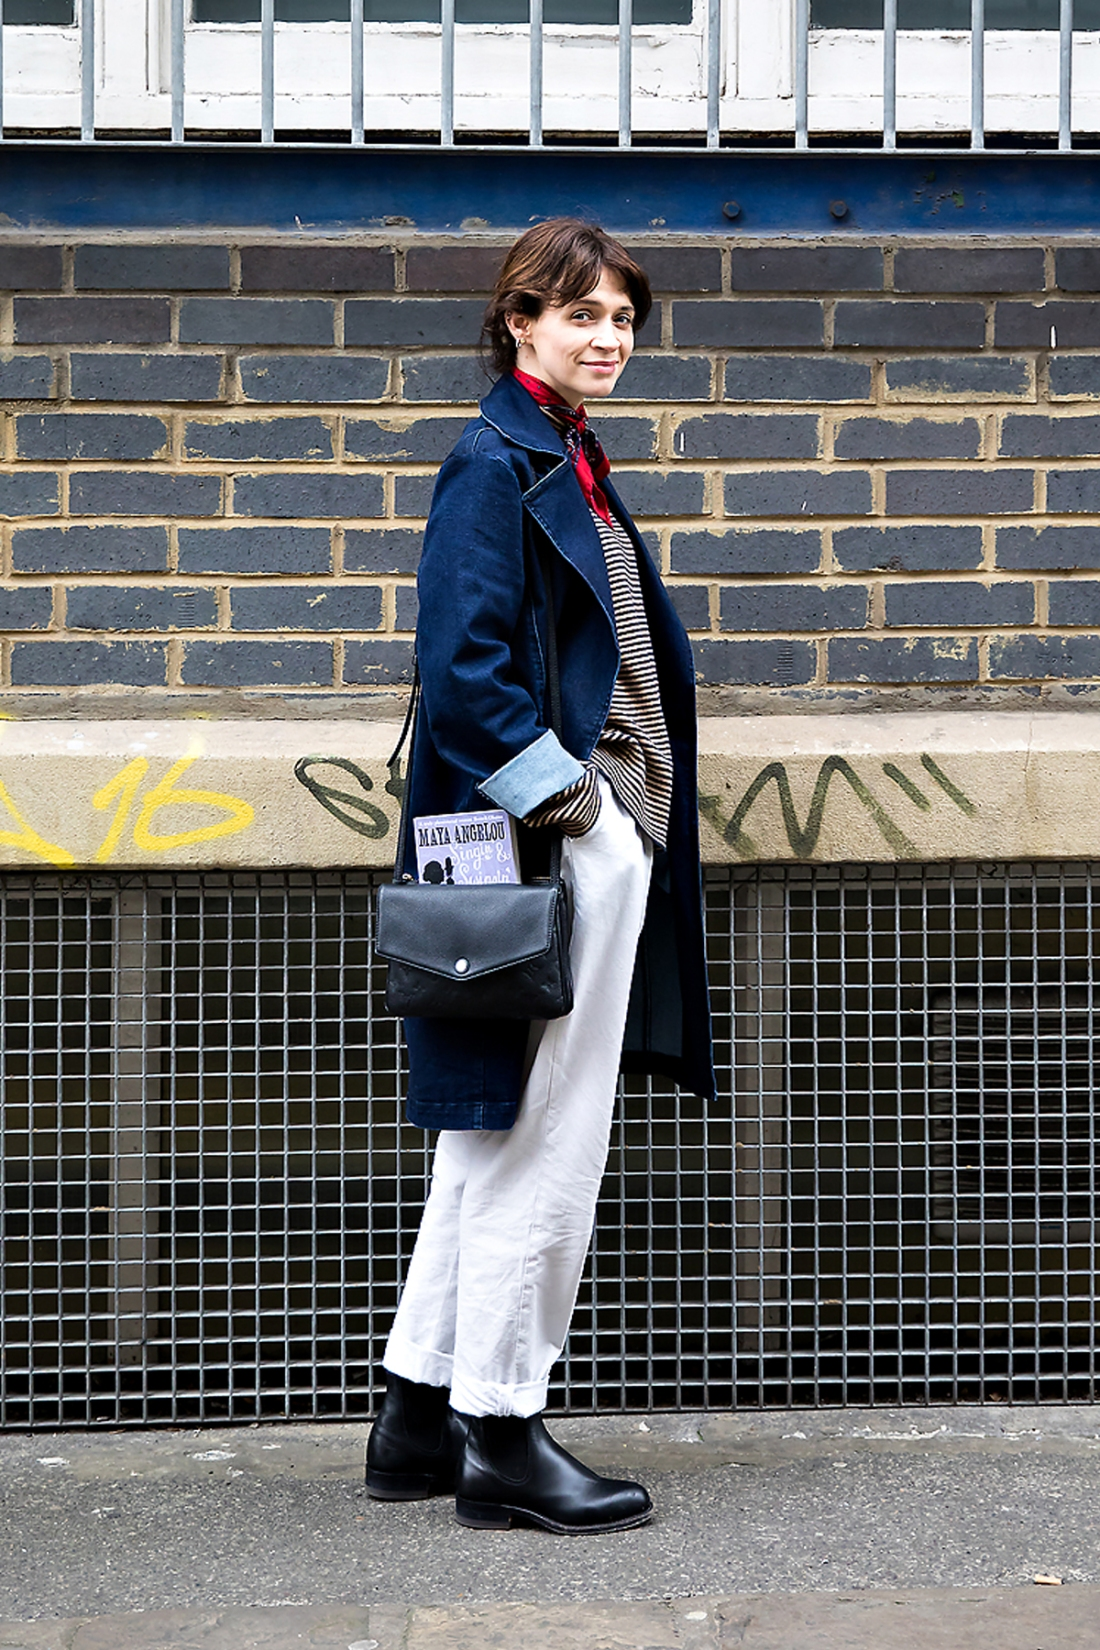 Charlene, Street Fashion 2017 in London.jpg